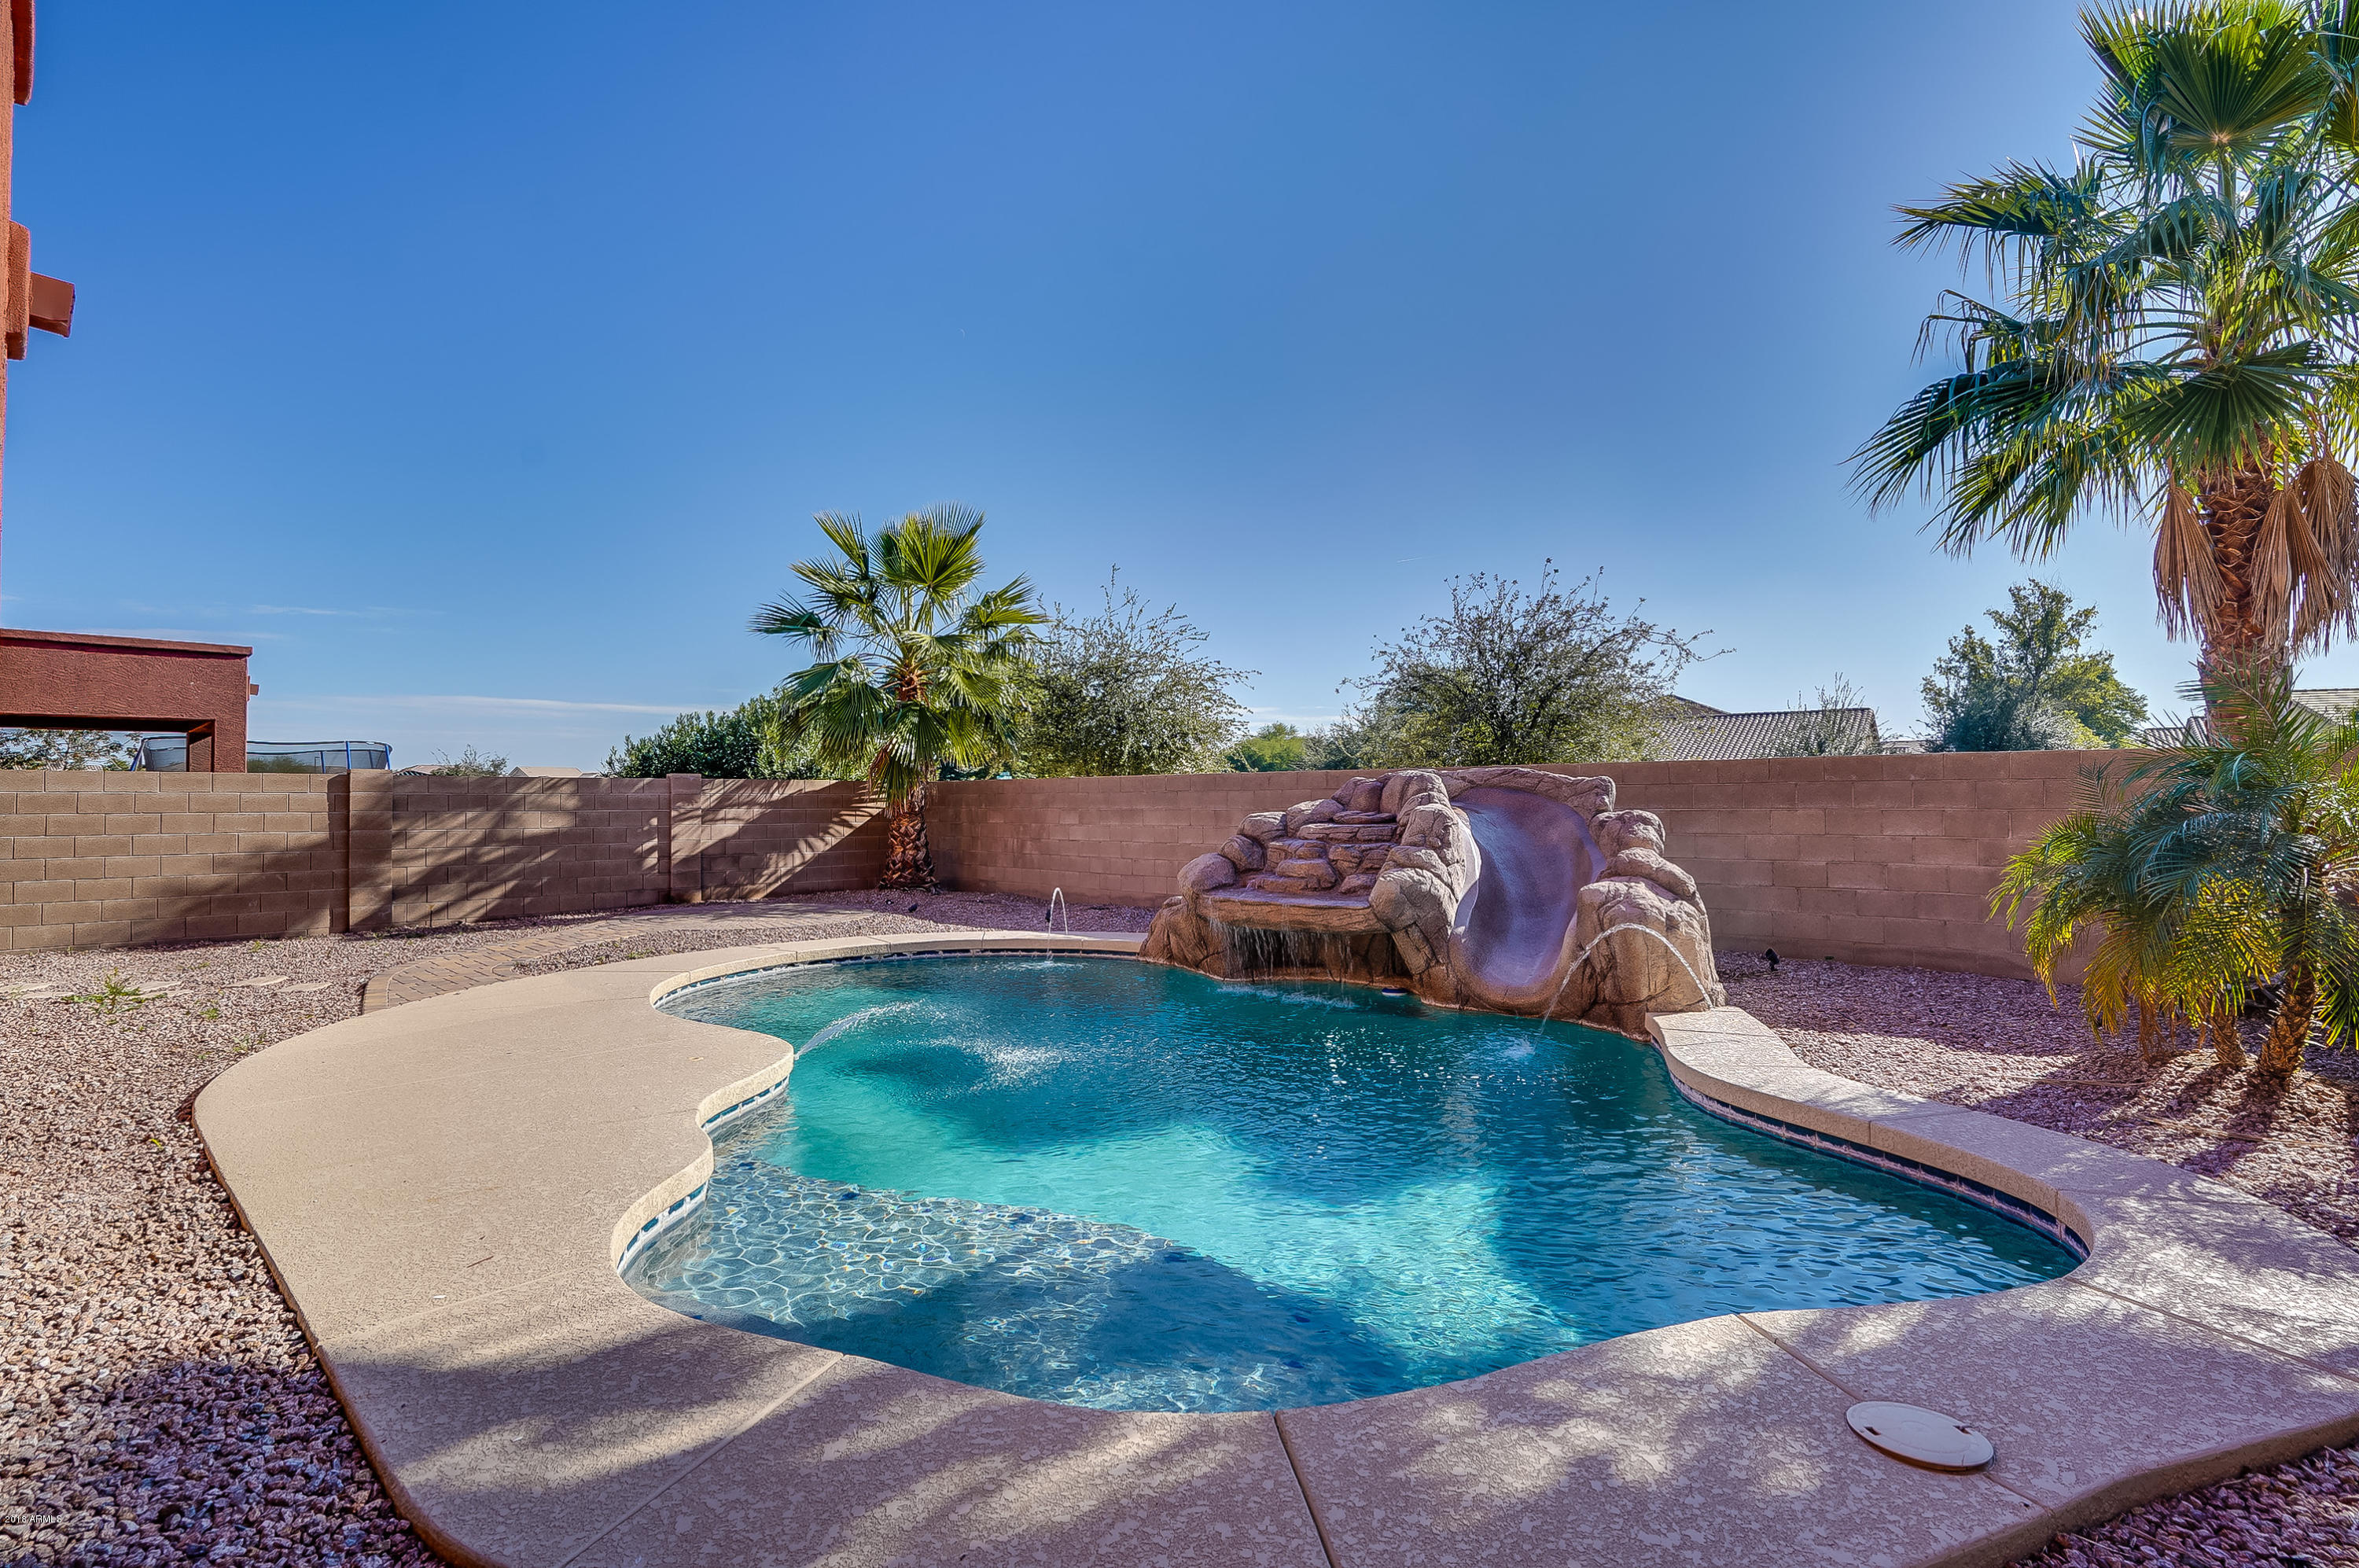 803 W SAGUARO Lane San Tan Valley, AZ 85143 - MLS #: 5857056